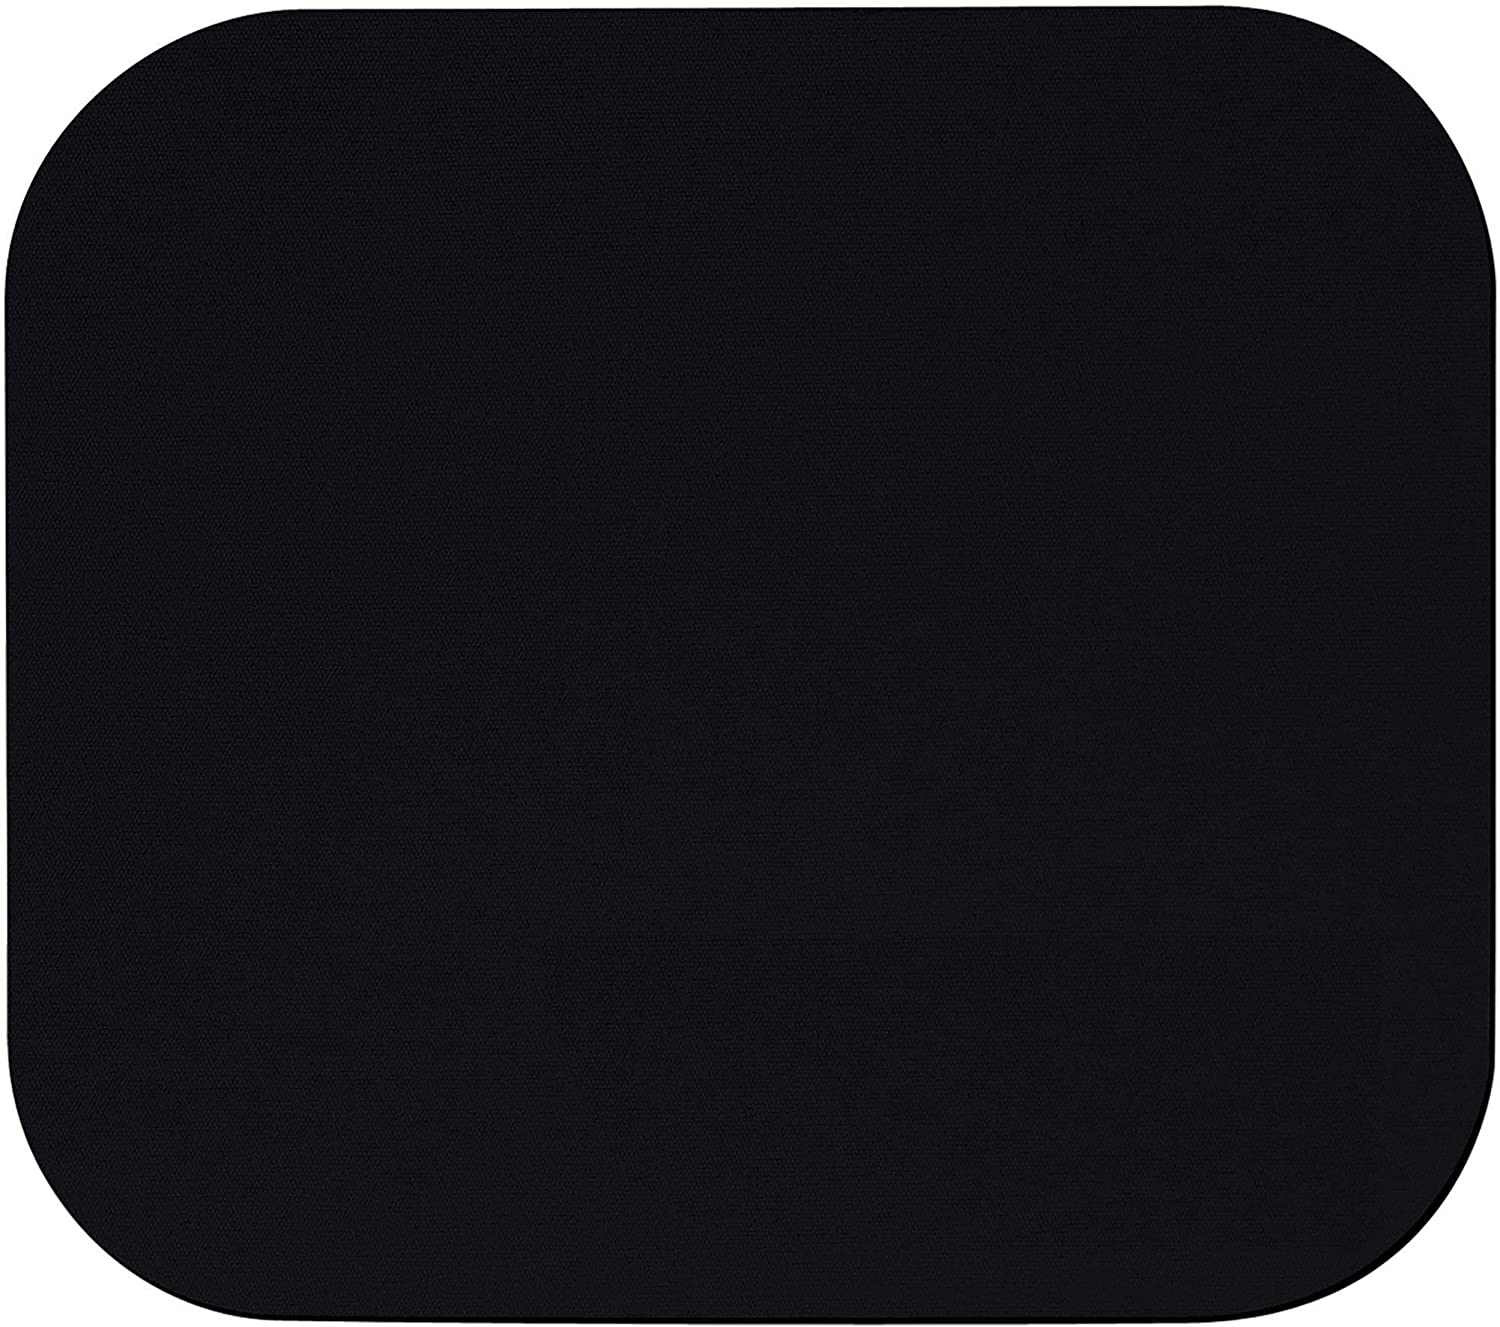 Fellowes Mouse Pad - Black FEL58024 Don't miss the Cheap SALE Start campaign